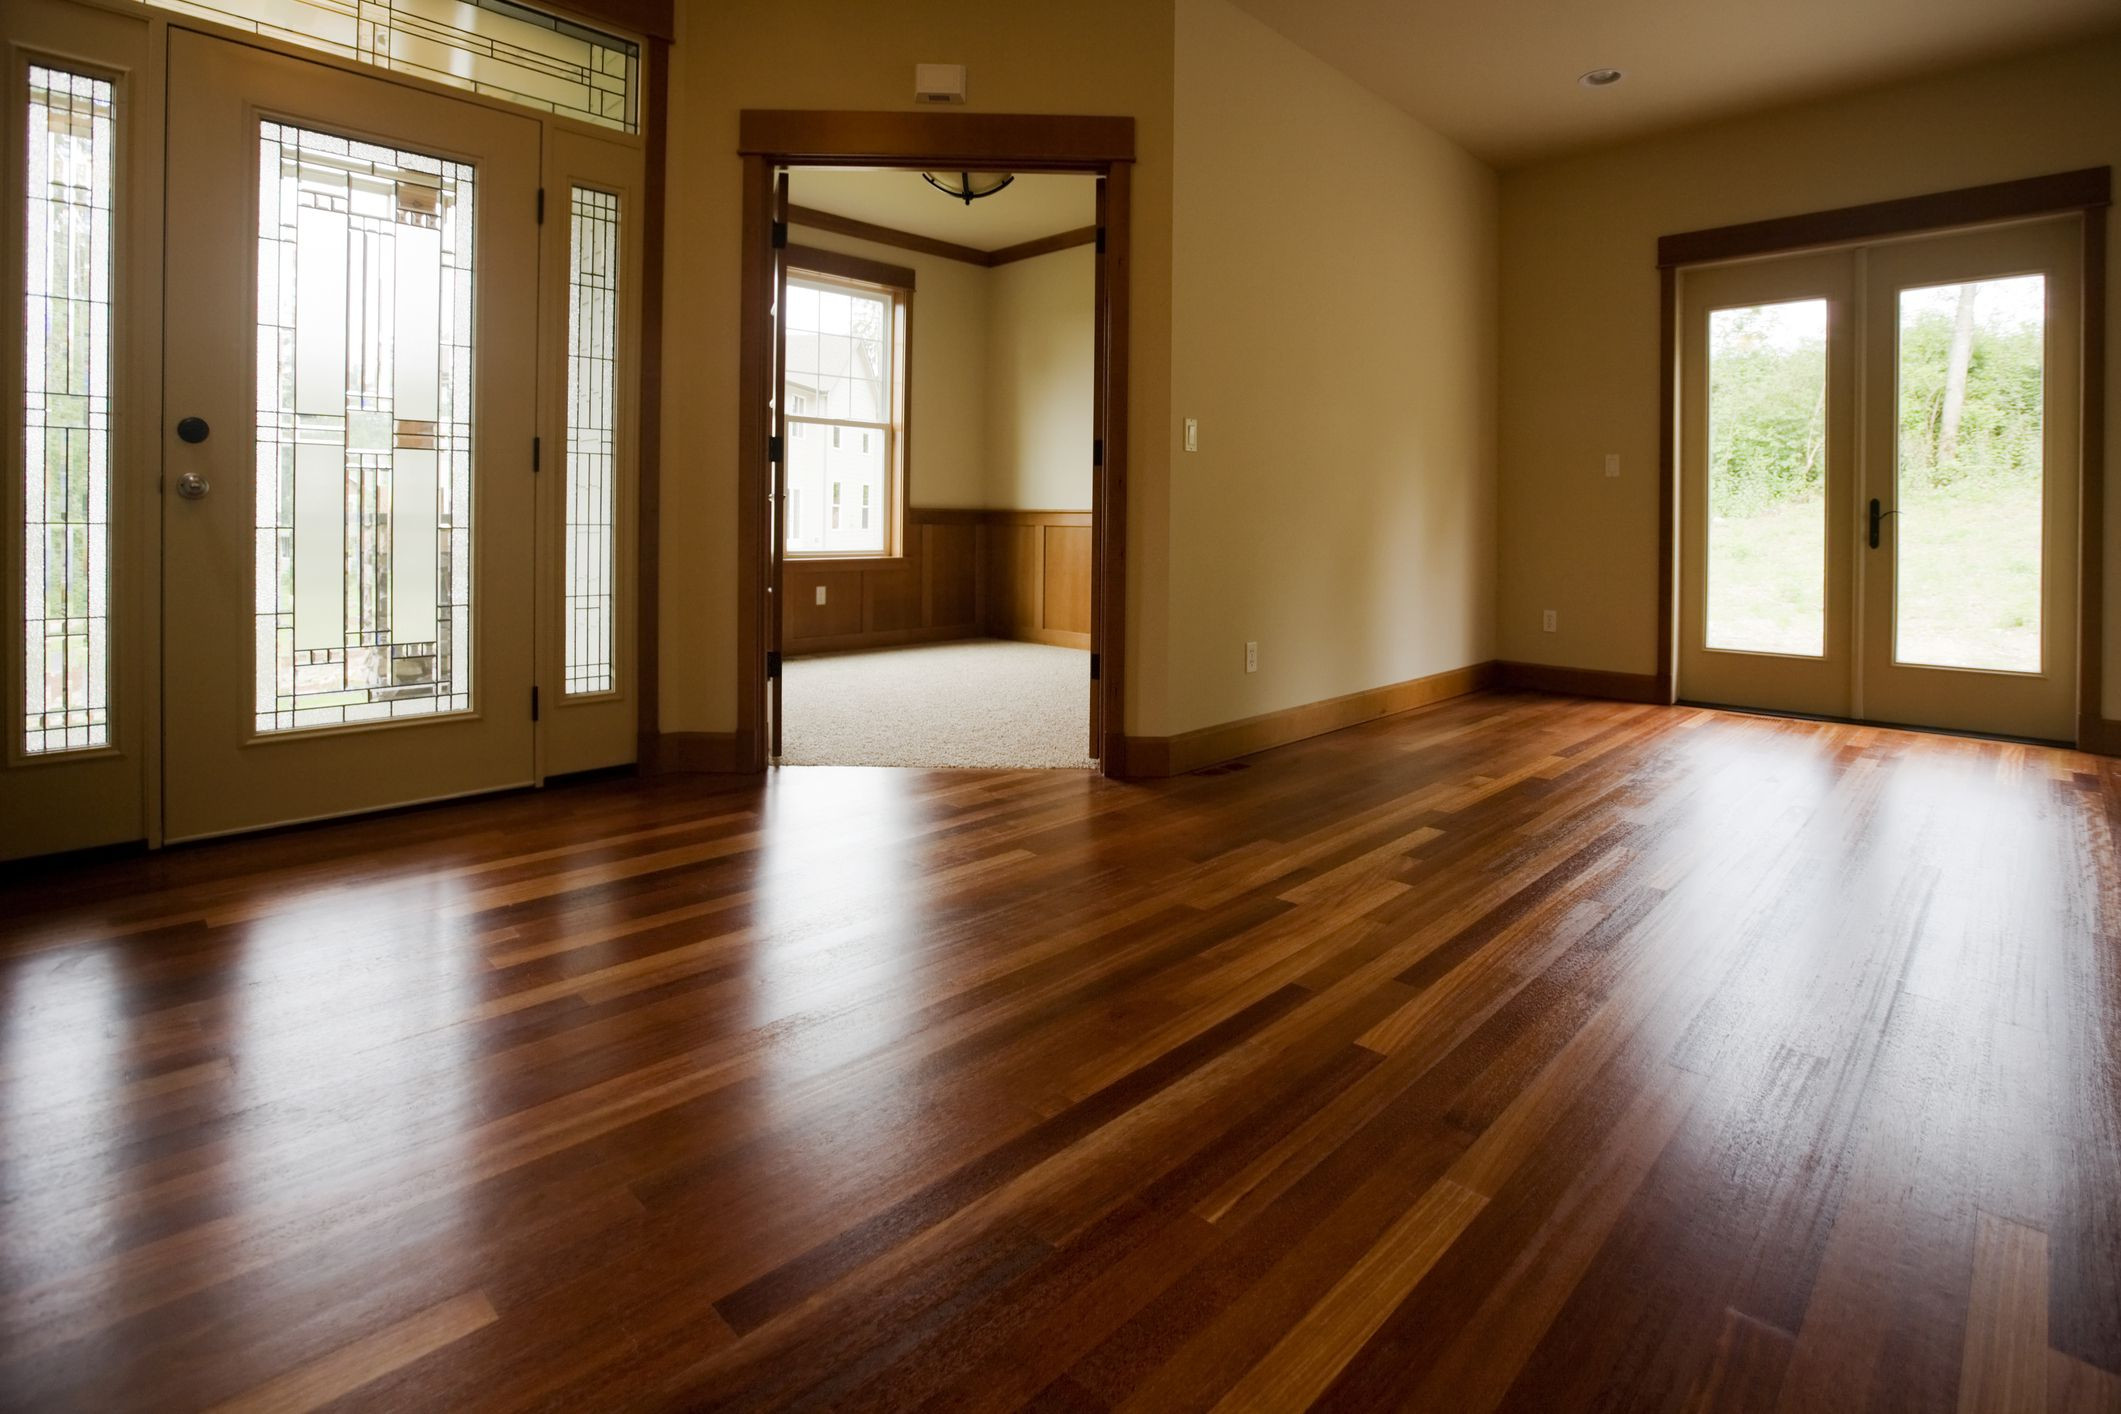 black walnut hardwood flooring for sale of types of hardwood flooring buyers guide throughout gettyimages 157332889 5886d8383df78c2ccd65d4e1